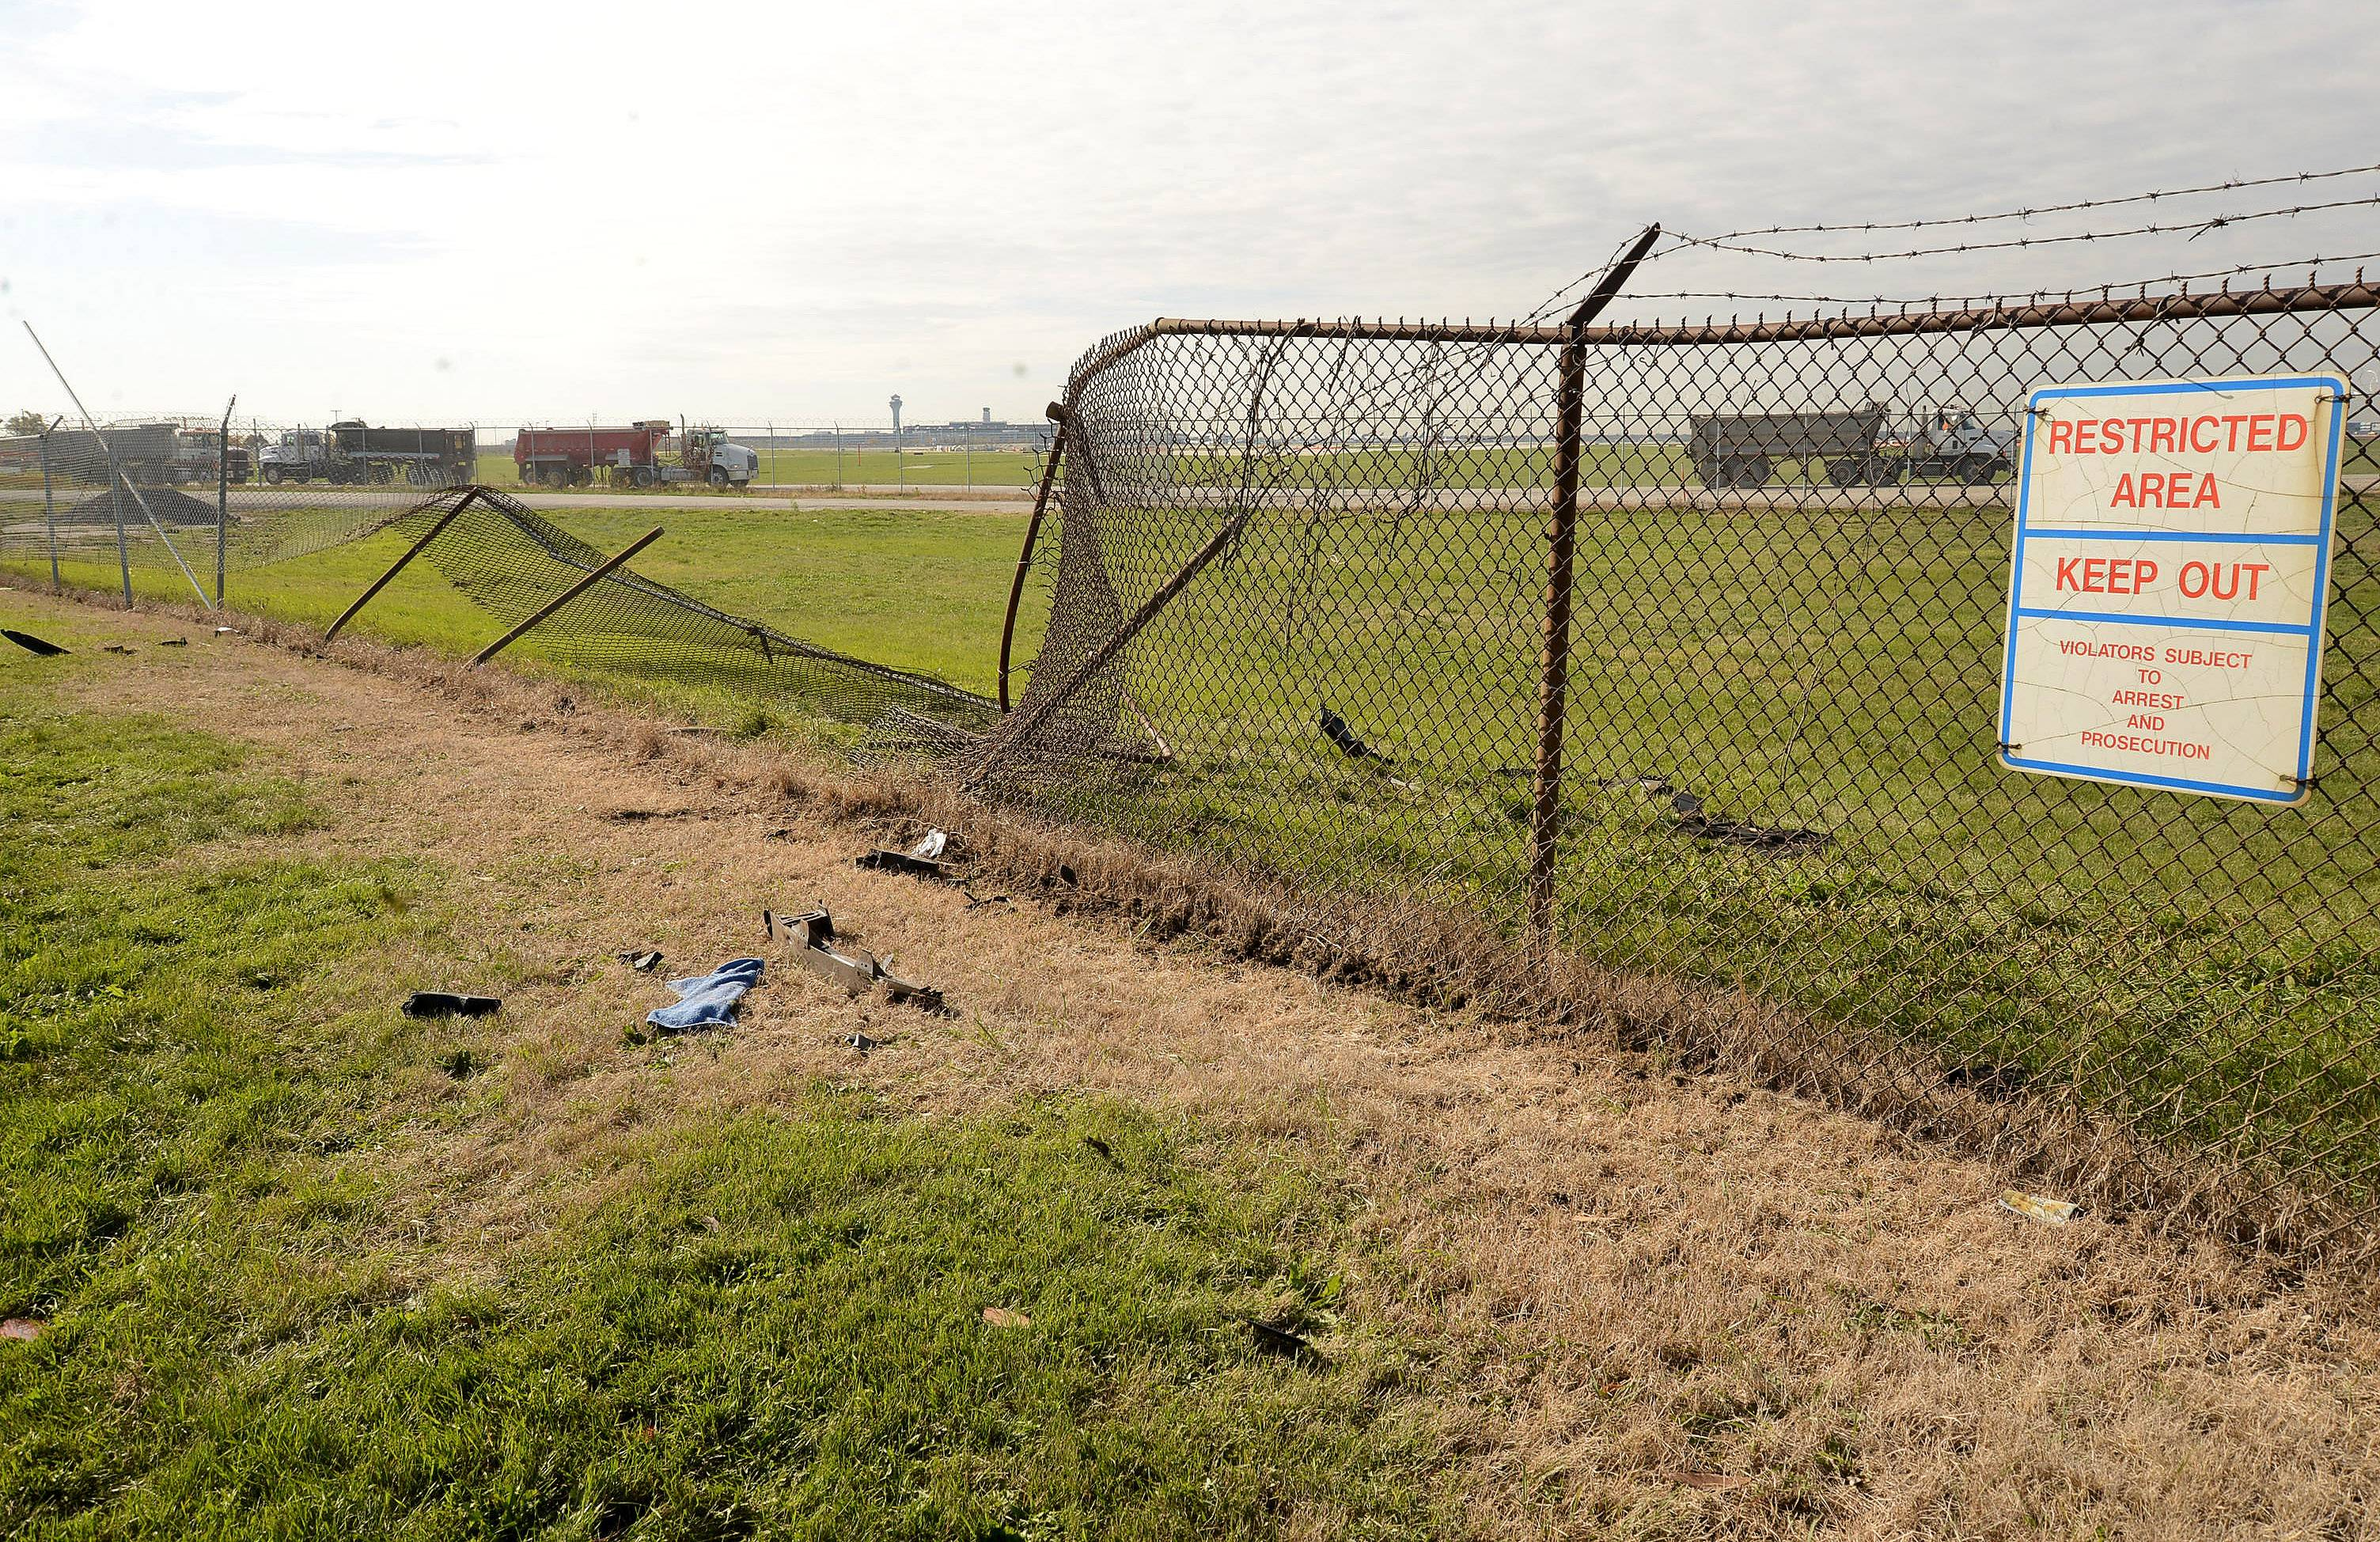 Security fencing around O'Hare International Airport took a beating when a motorist crashed into it in fall of 2013. There have been 10 cases of people breaching fences and gates since 2004.